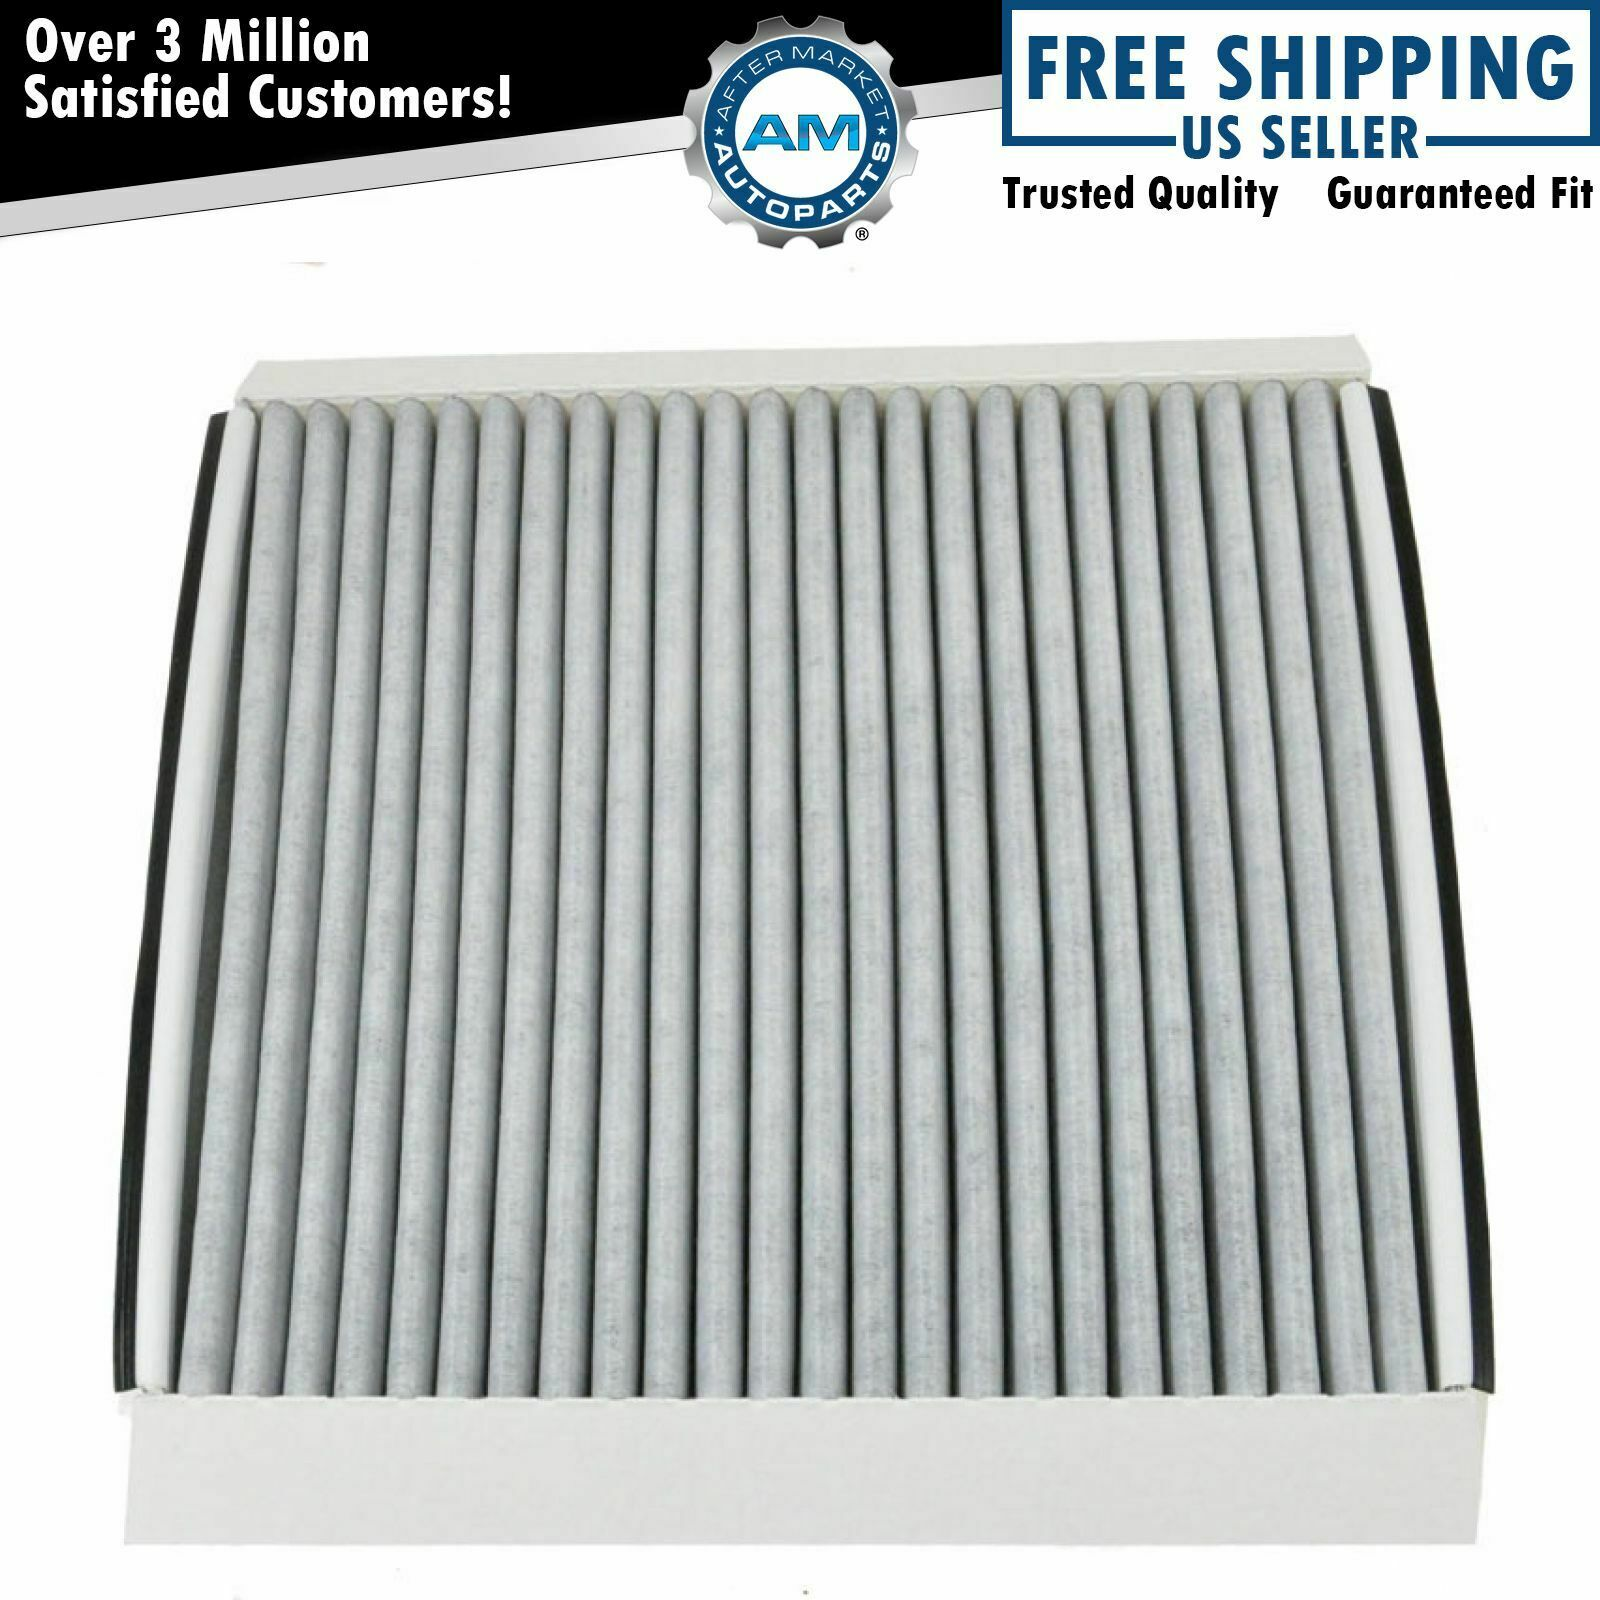 Cabin Air Filter For 98 05 Mercedes Benz Ml320 Ml350 Ml430 Ml500 Ml V8 Engine Schematic Diagram 1 Of 2only 5 Available